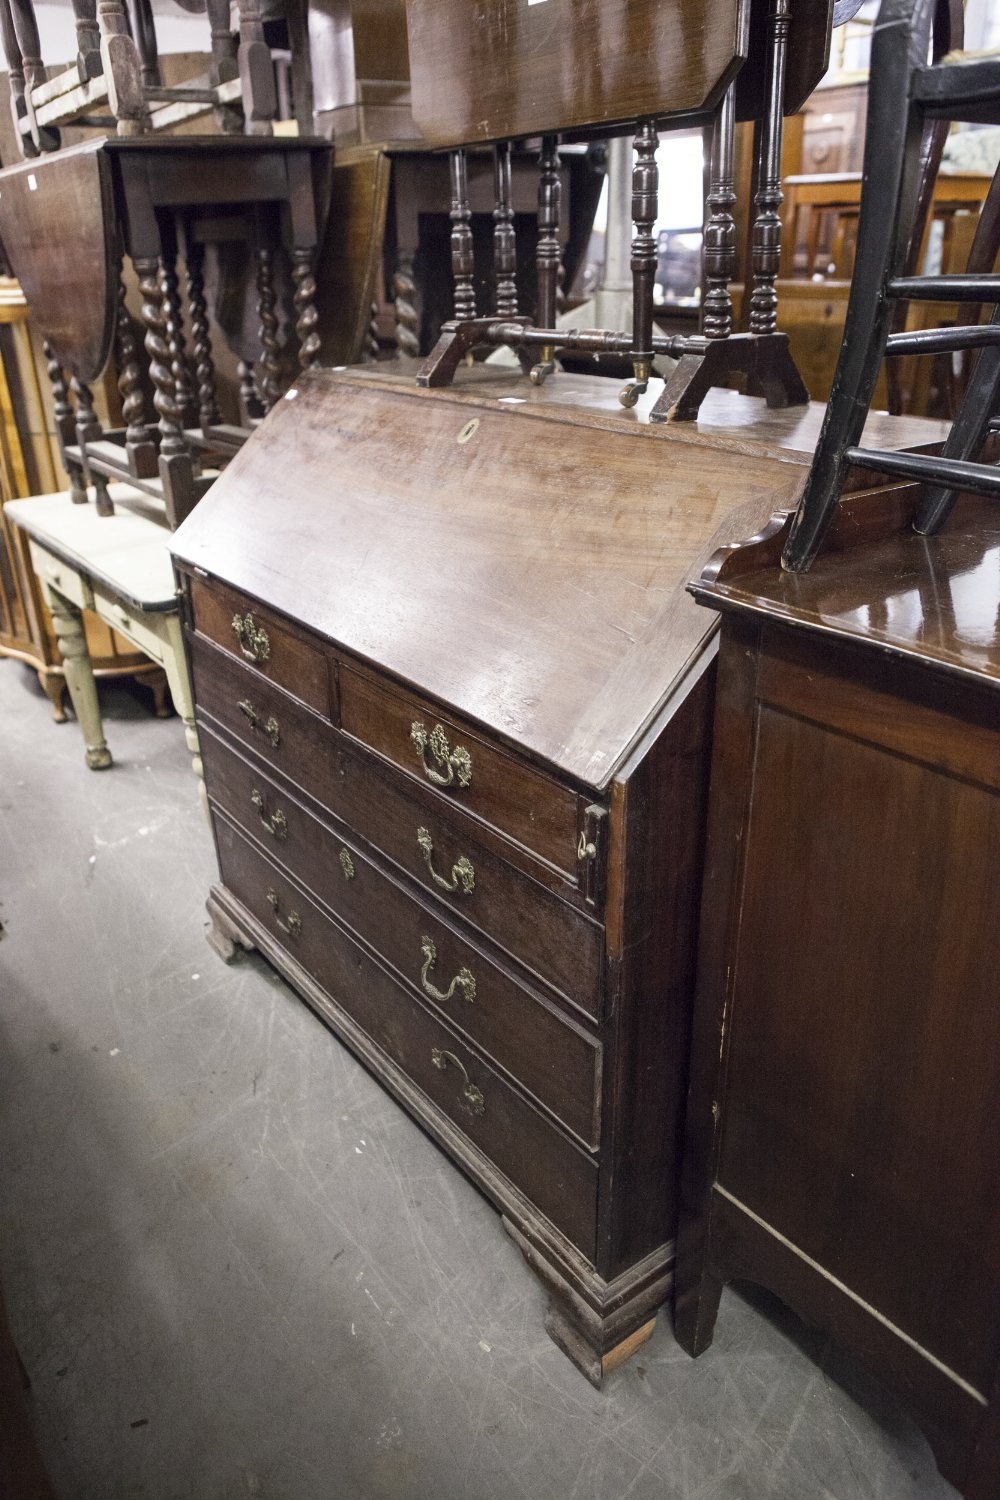 Lot 6 - A LARGE LATE EIGHTEENTH CENTURY MAHOGANY BUREAU WITH FITTED INTERIOR OVER TWO SHORT AND THREE LONG